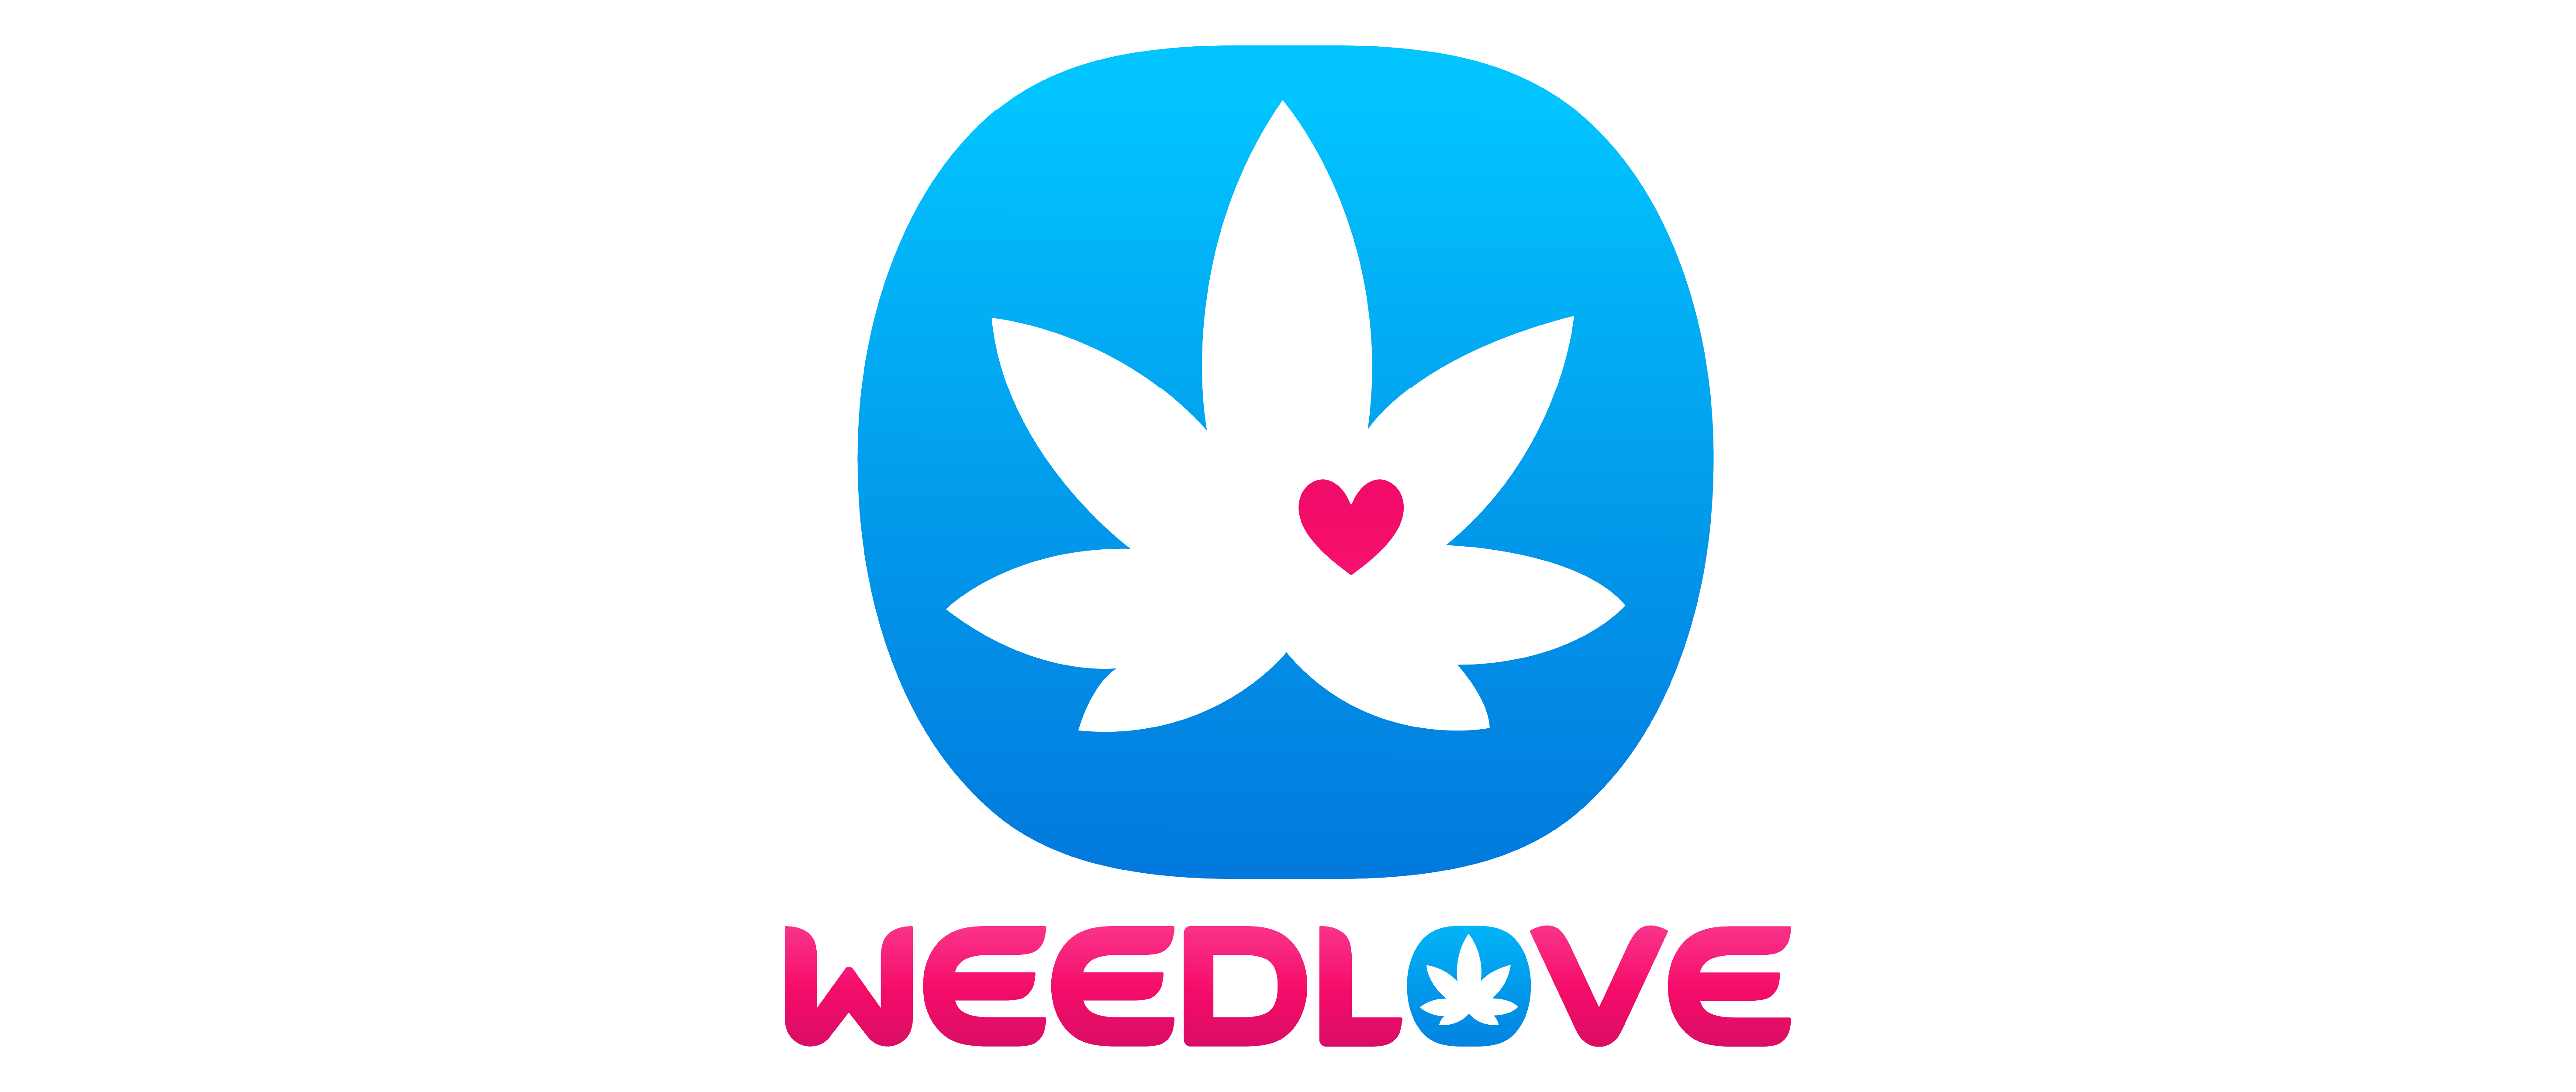 Weed love | Weed Girls